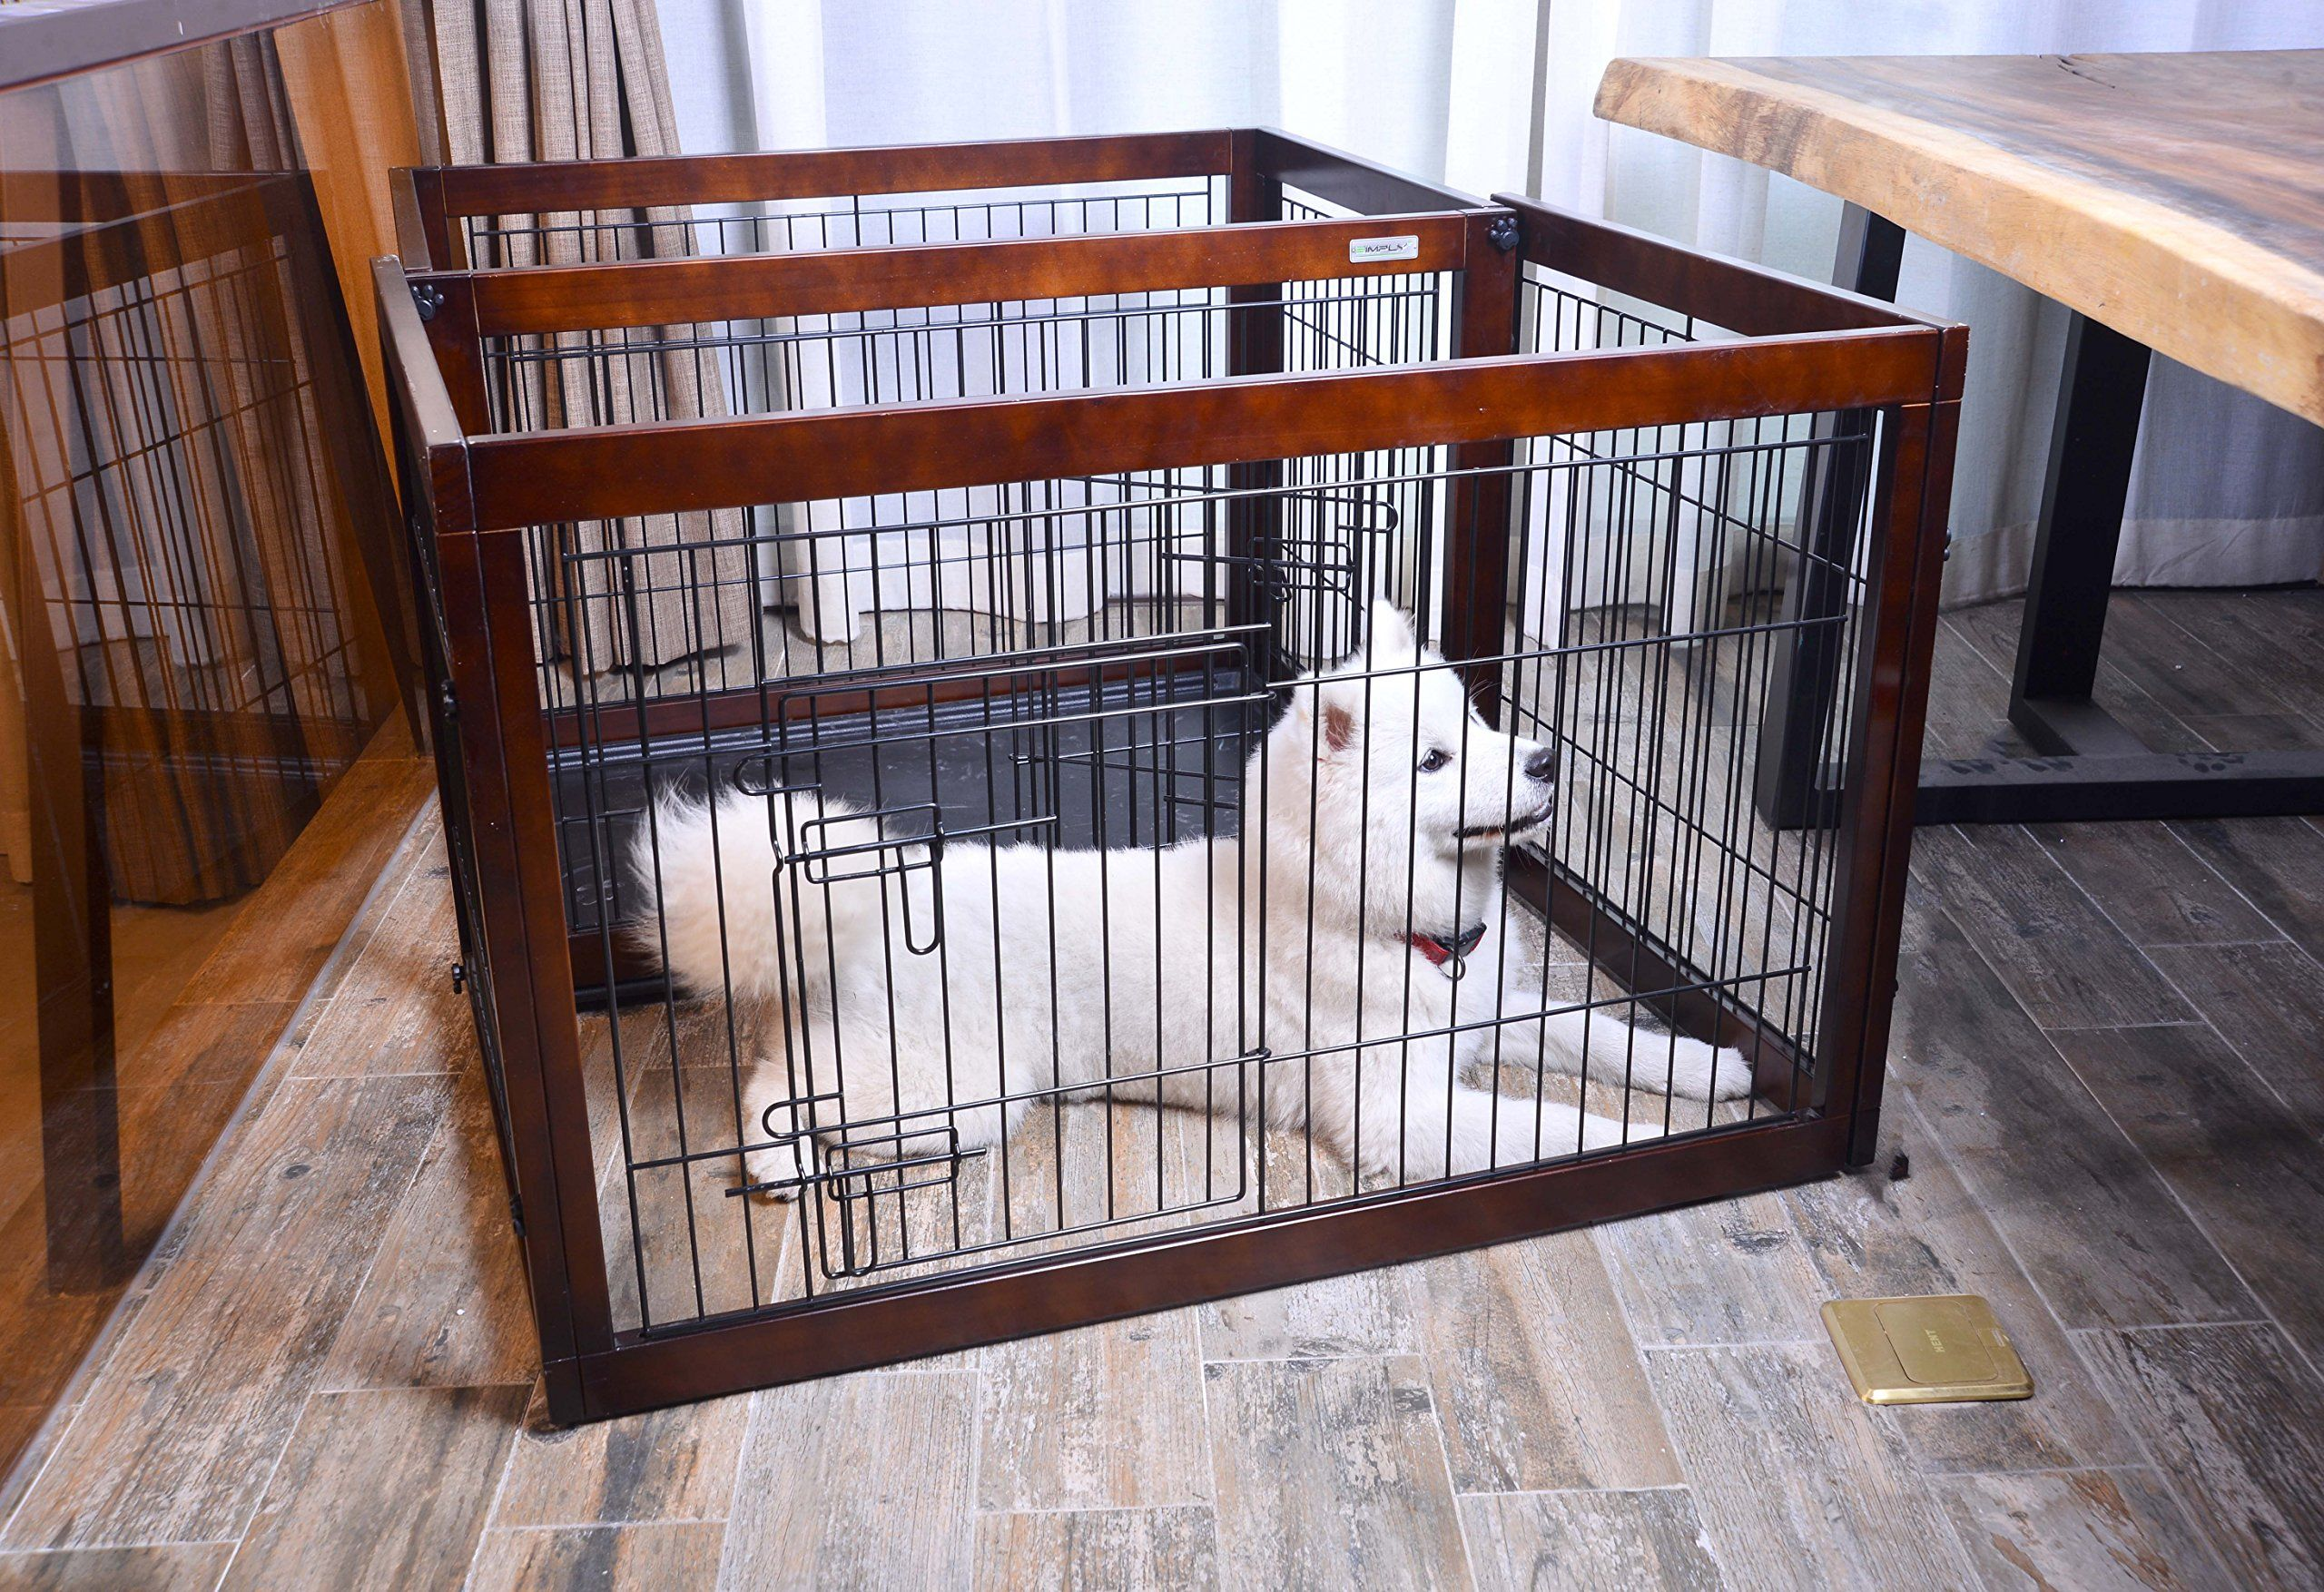 Simply Plus Dog Crate 2017newly Designed Model Solid Wooden Frame Metal W Divider And Tray Small27 6 X 20 X 23 6 Want Addit Dog Crate Crates Design Model